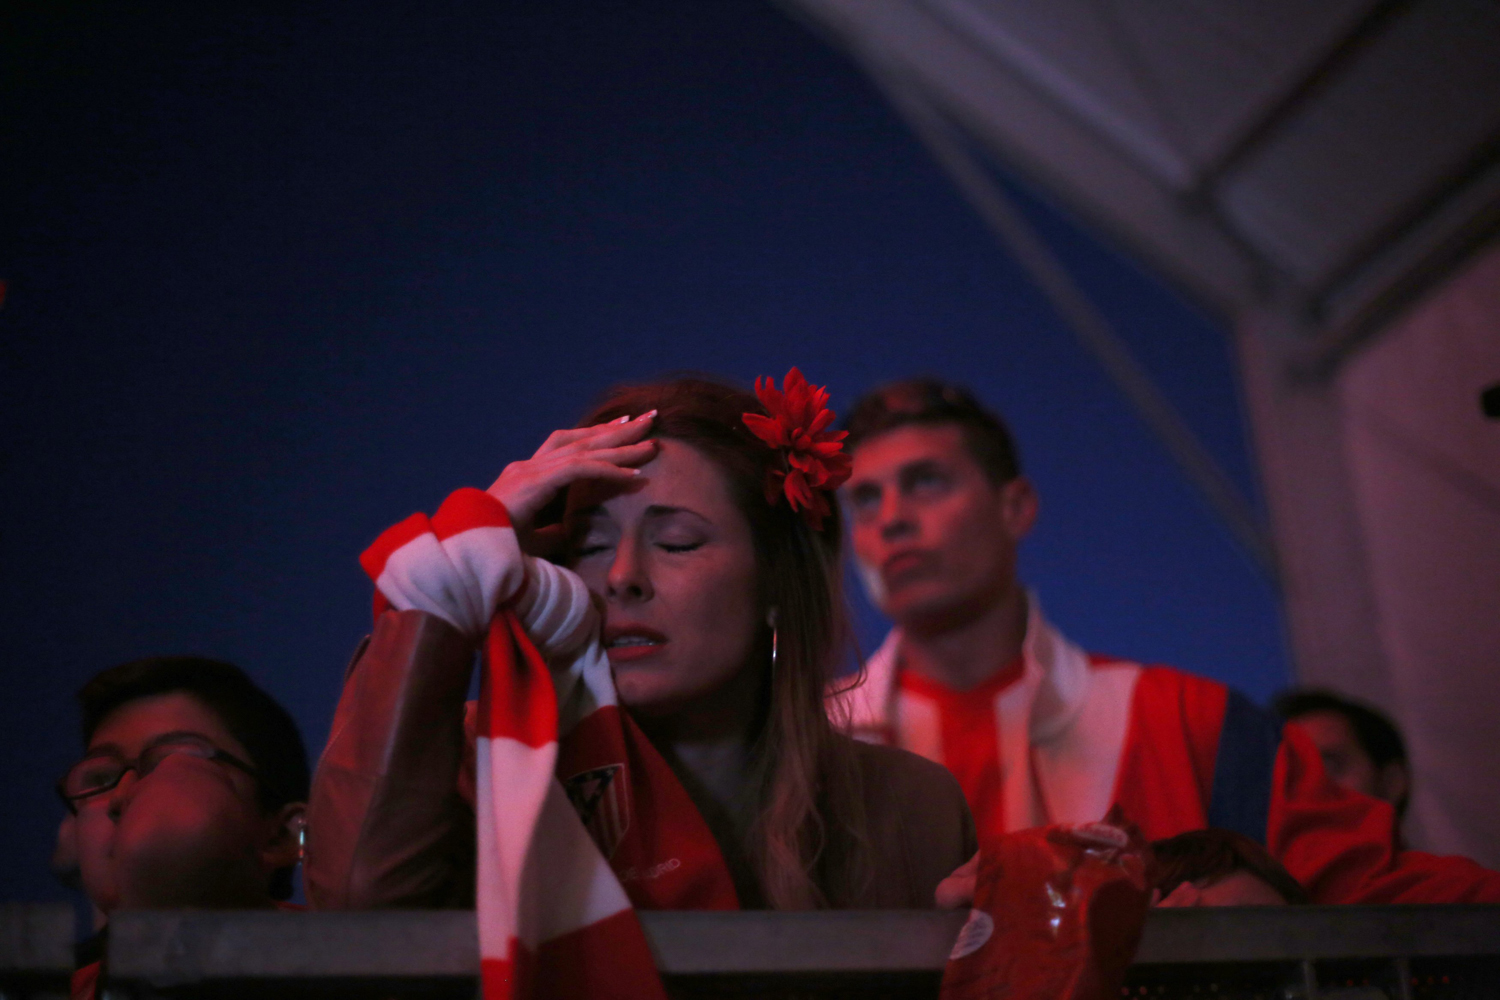 May 24, 2014. Atletico Madrid's fans react during Champions League final soccer match between Atletico Madrid and Real Madrid at a public screening in Lisbon.